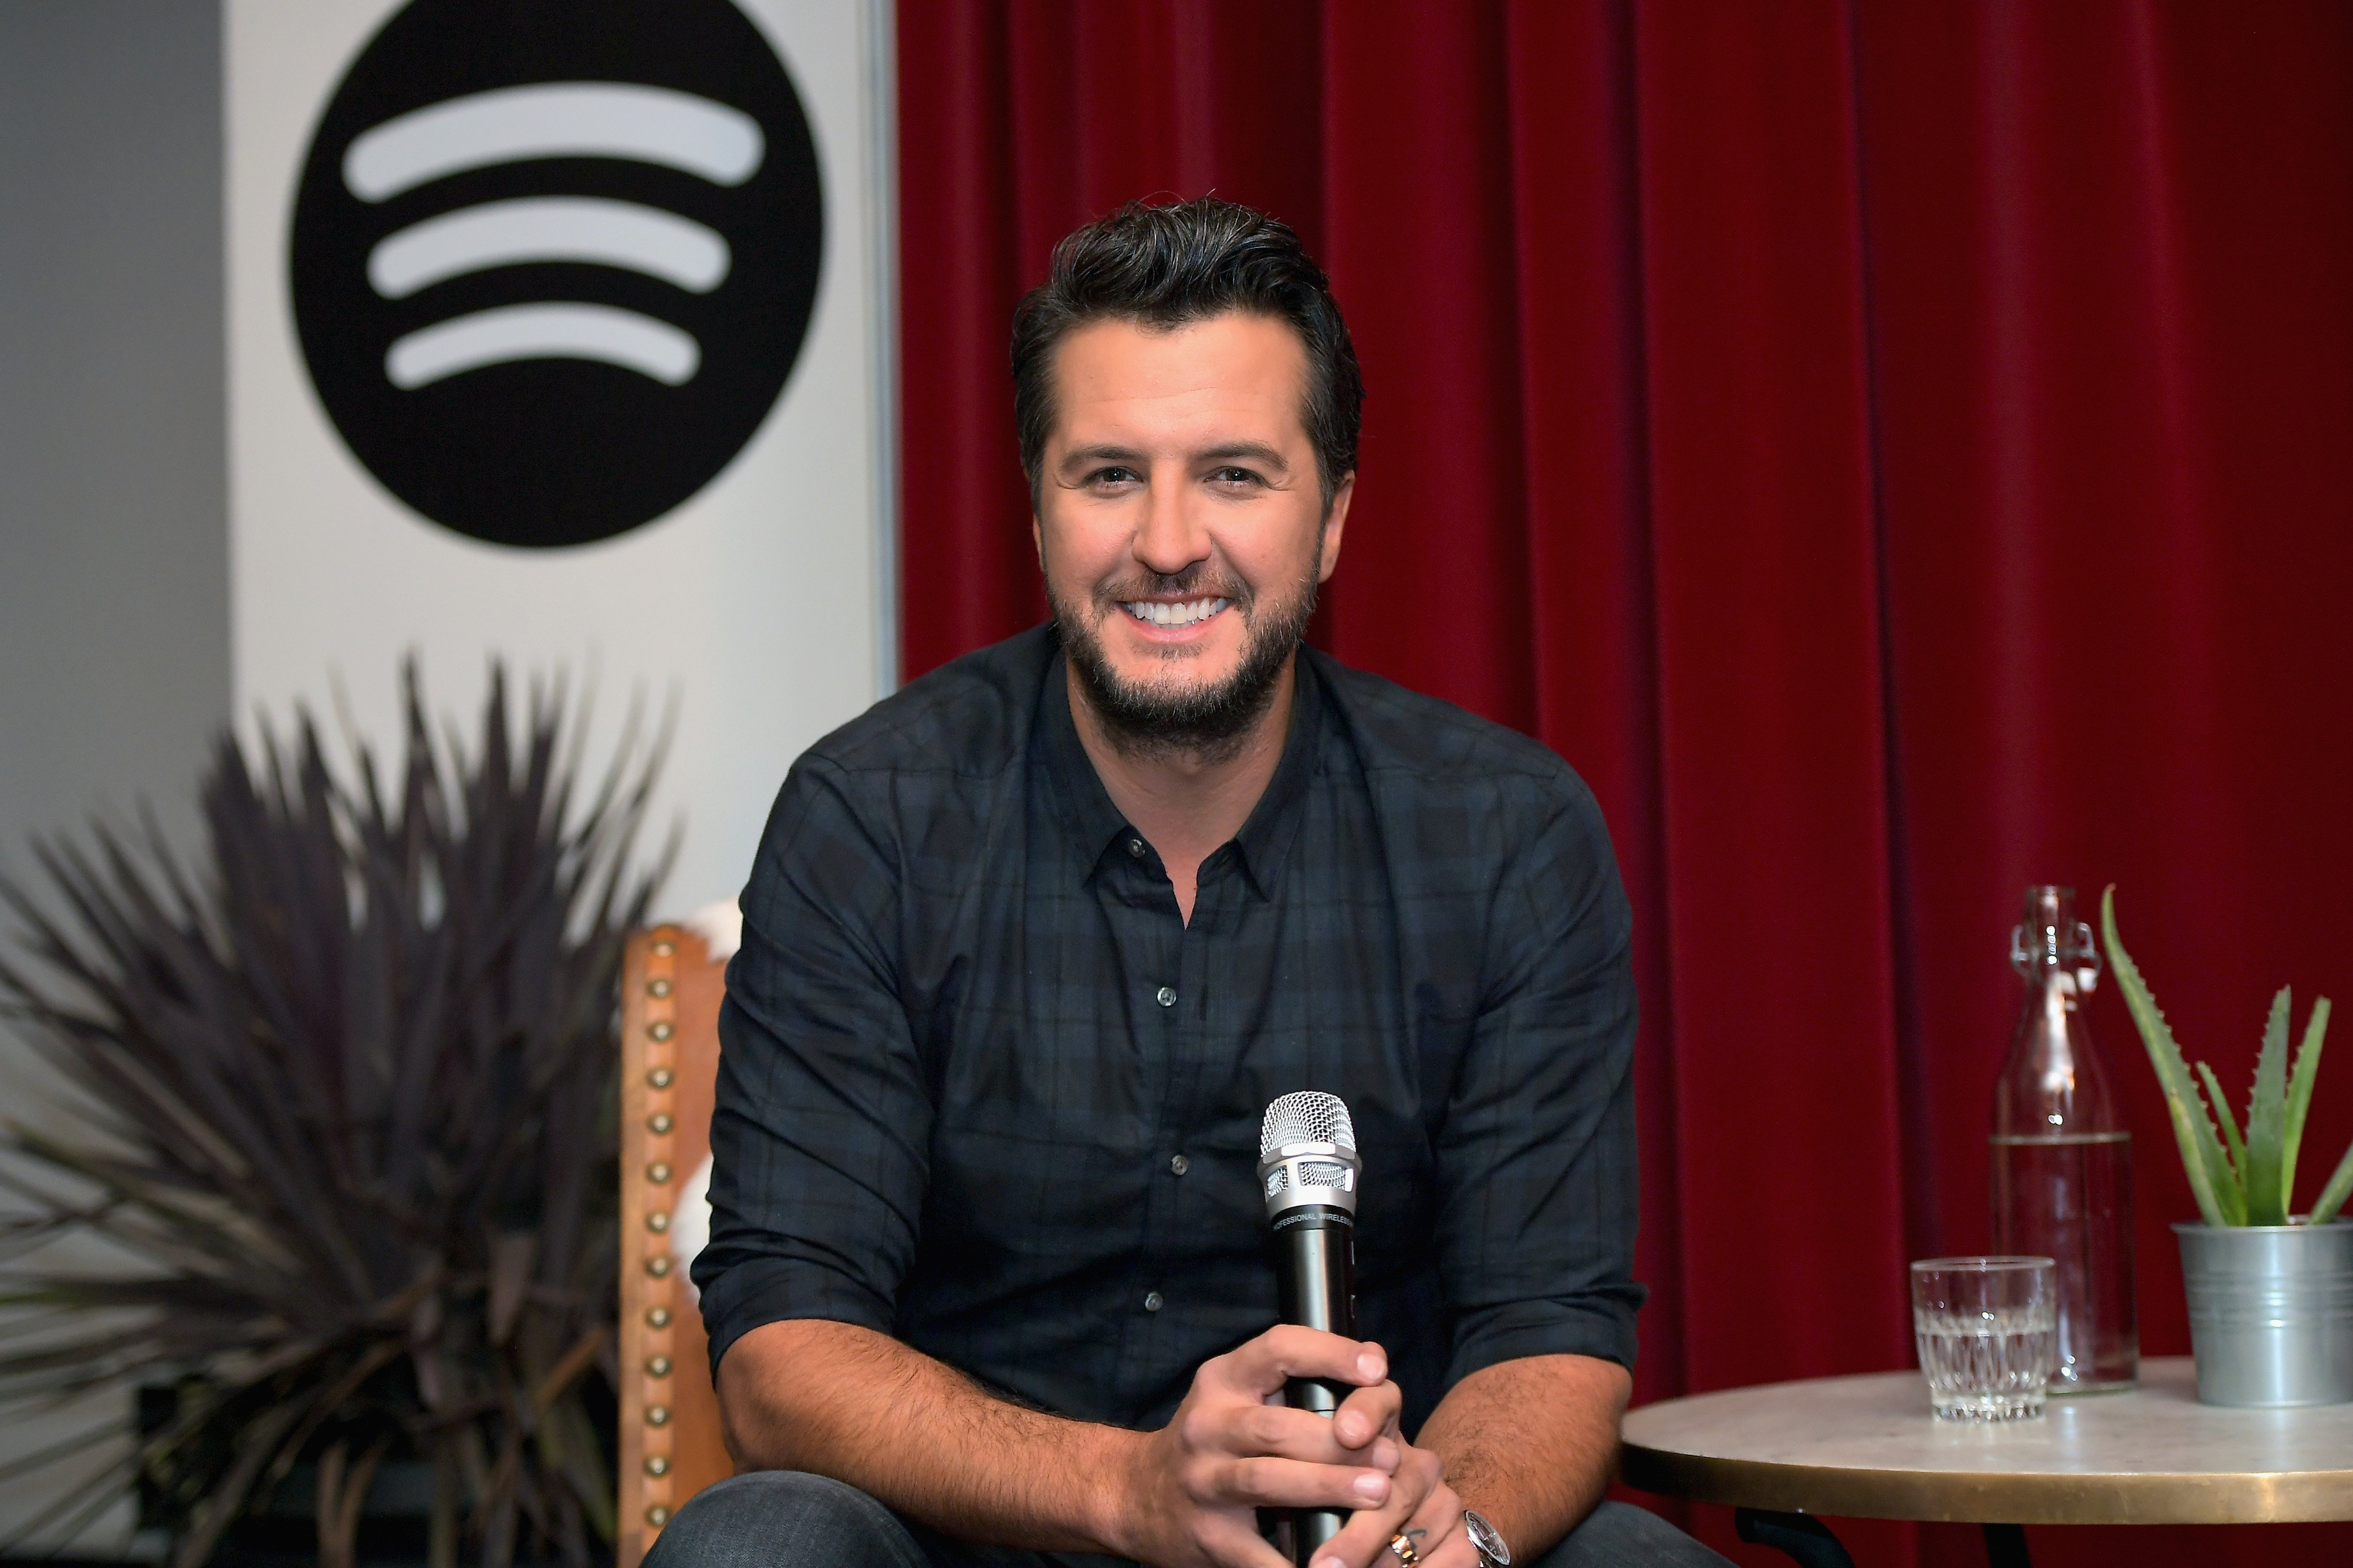 Luke Bryan during a 2017 fan meet and greet event in Los Angeles. | Photo: Getty Images